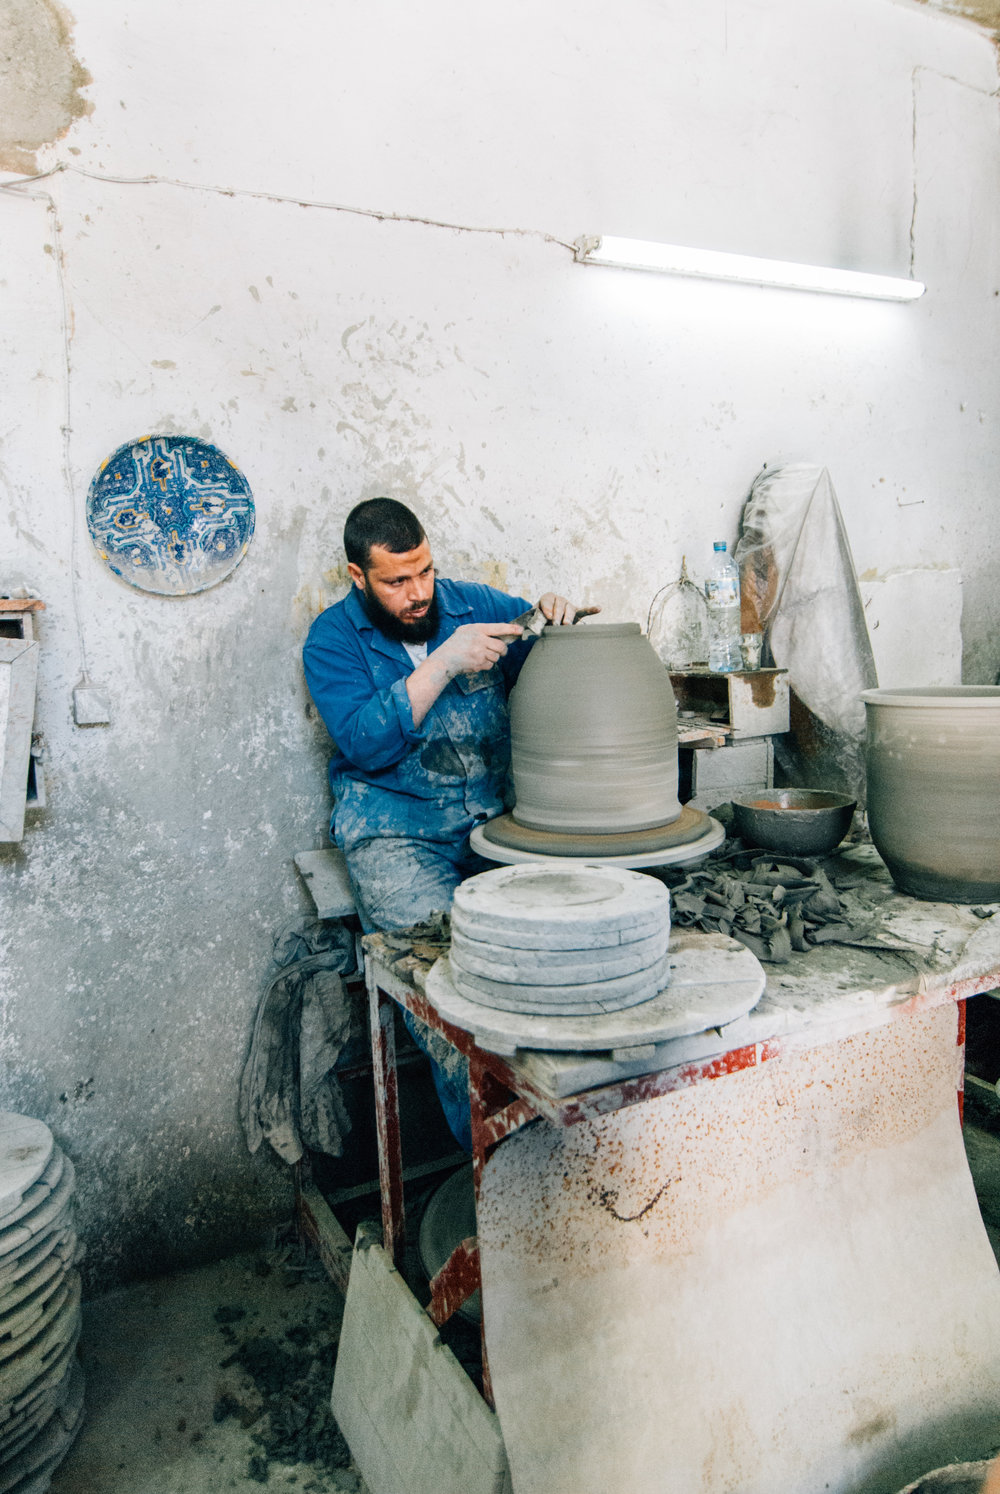 Moroccan ceramic artist handmade Toronto Travel Photographers - Suech and Beck